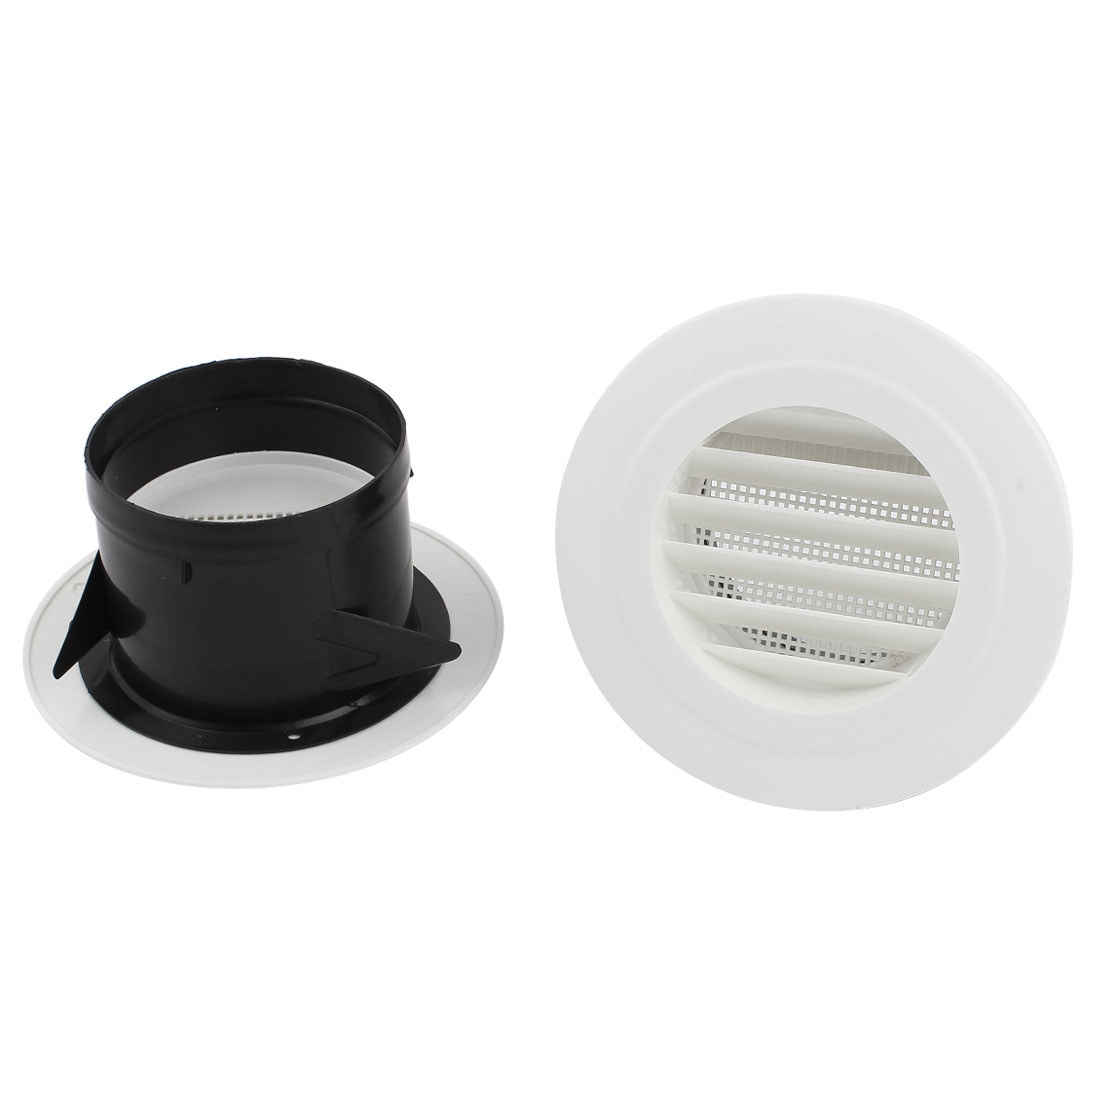 2pcs Black White Plastic 100mm Outer Dia Oblique Style Air Grilles Vent Valve